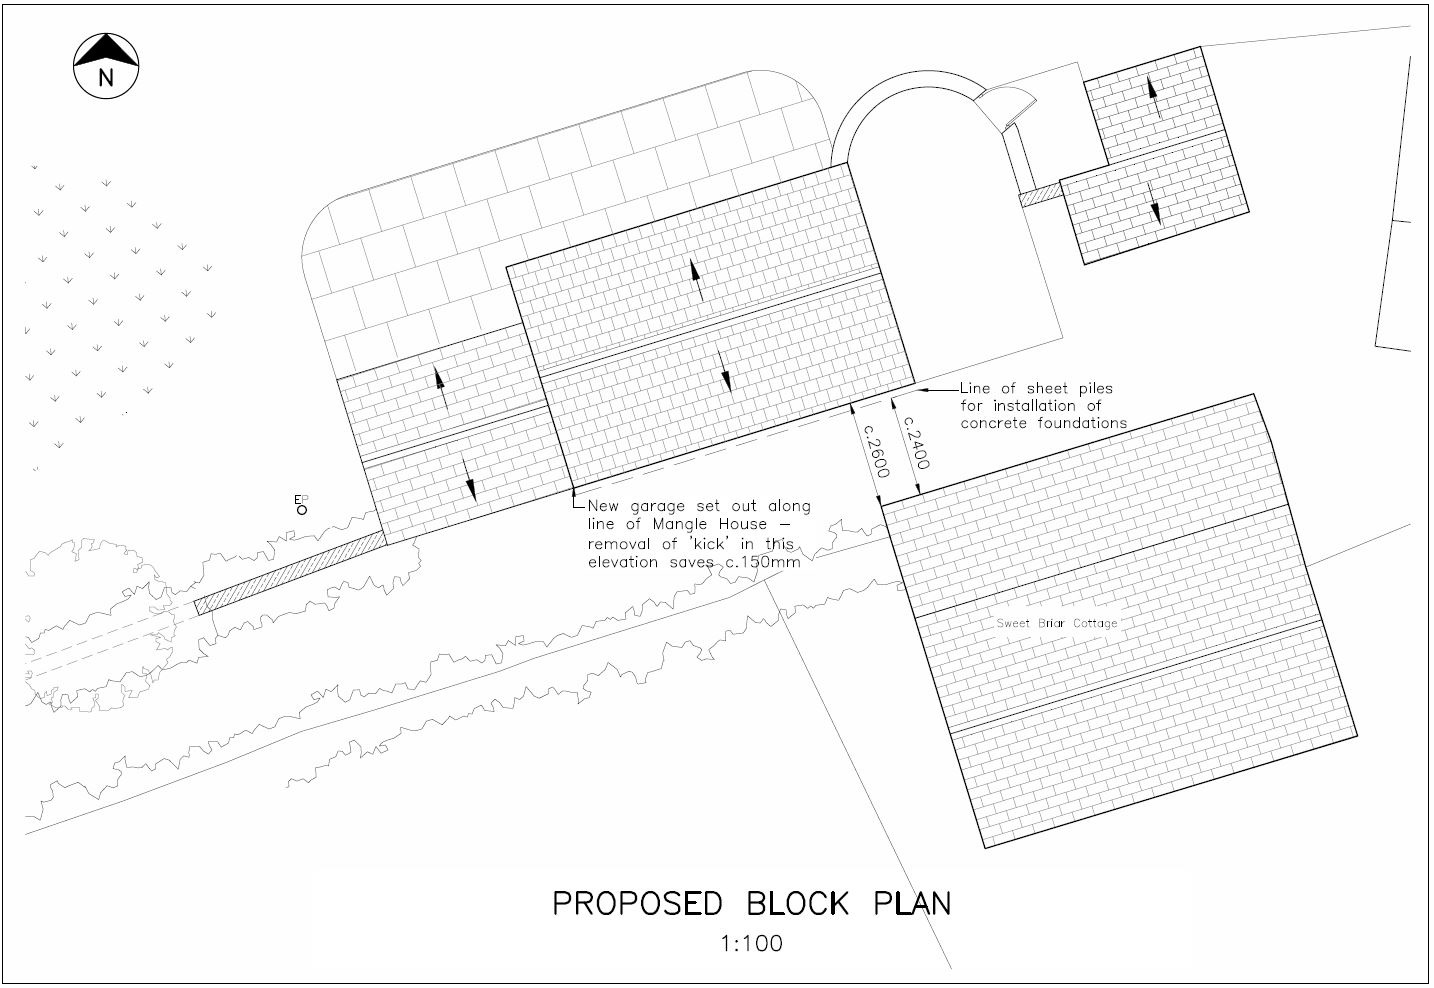 PLANNING PERMISSION, PLANNING APPLICATIONS AND PLANNING